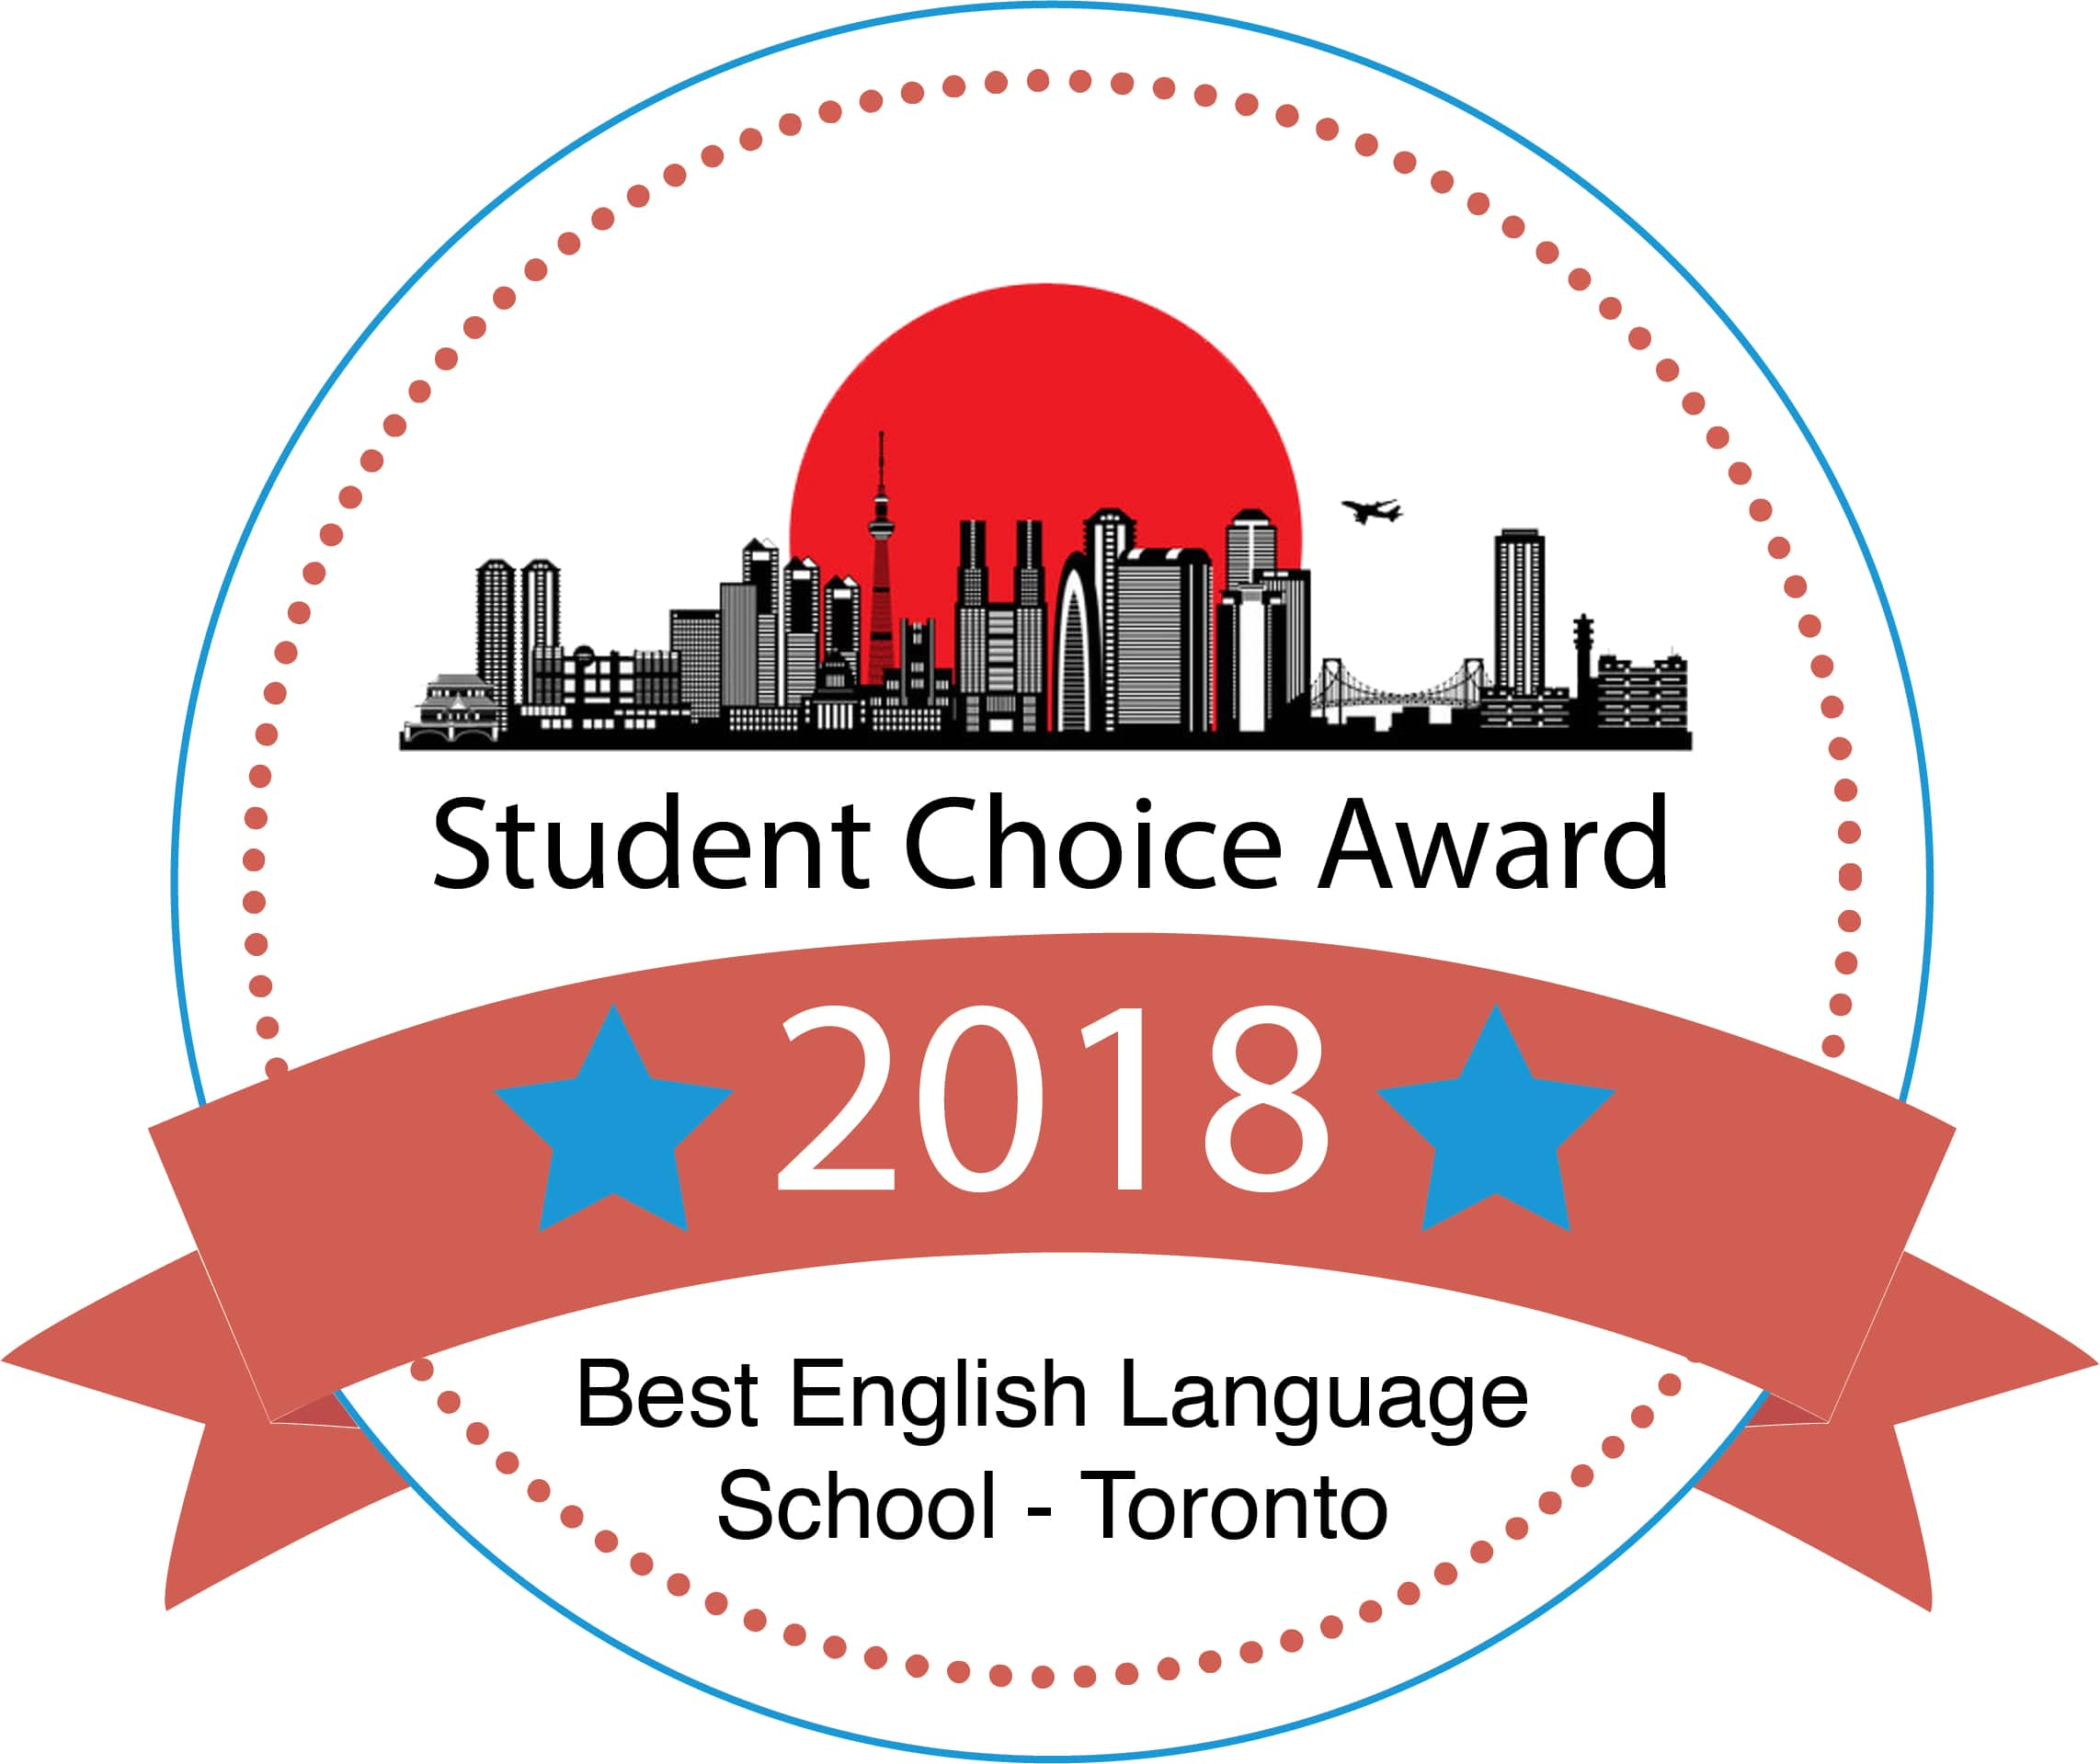 Student Choice Award 2018